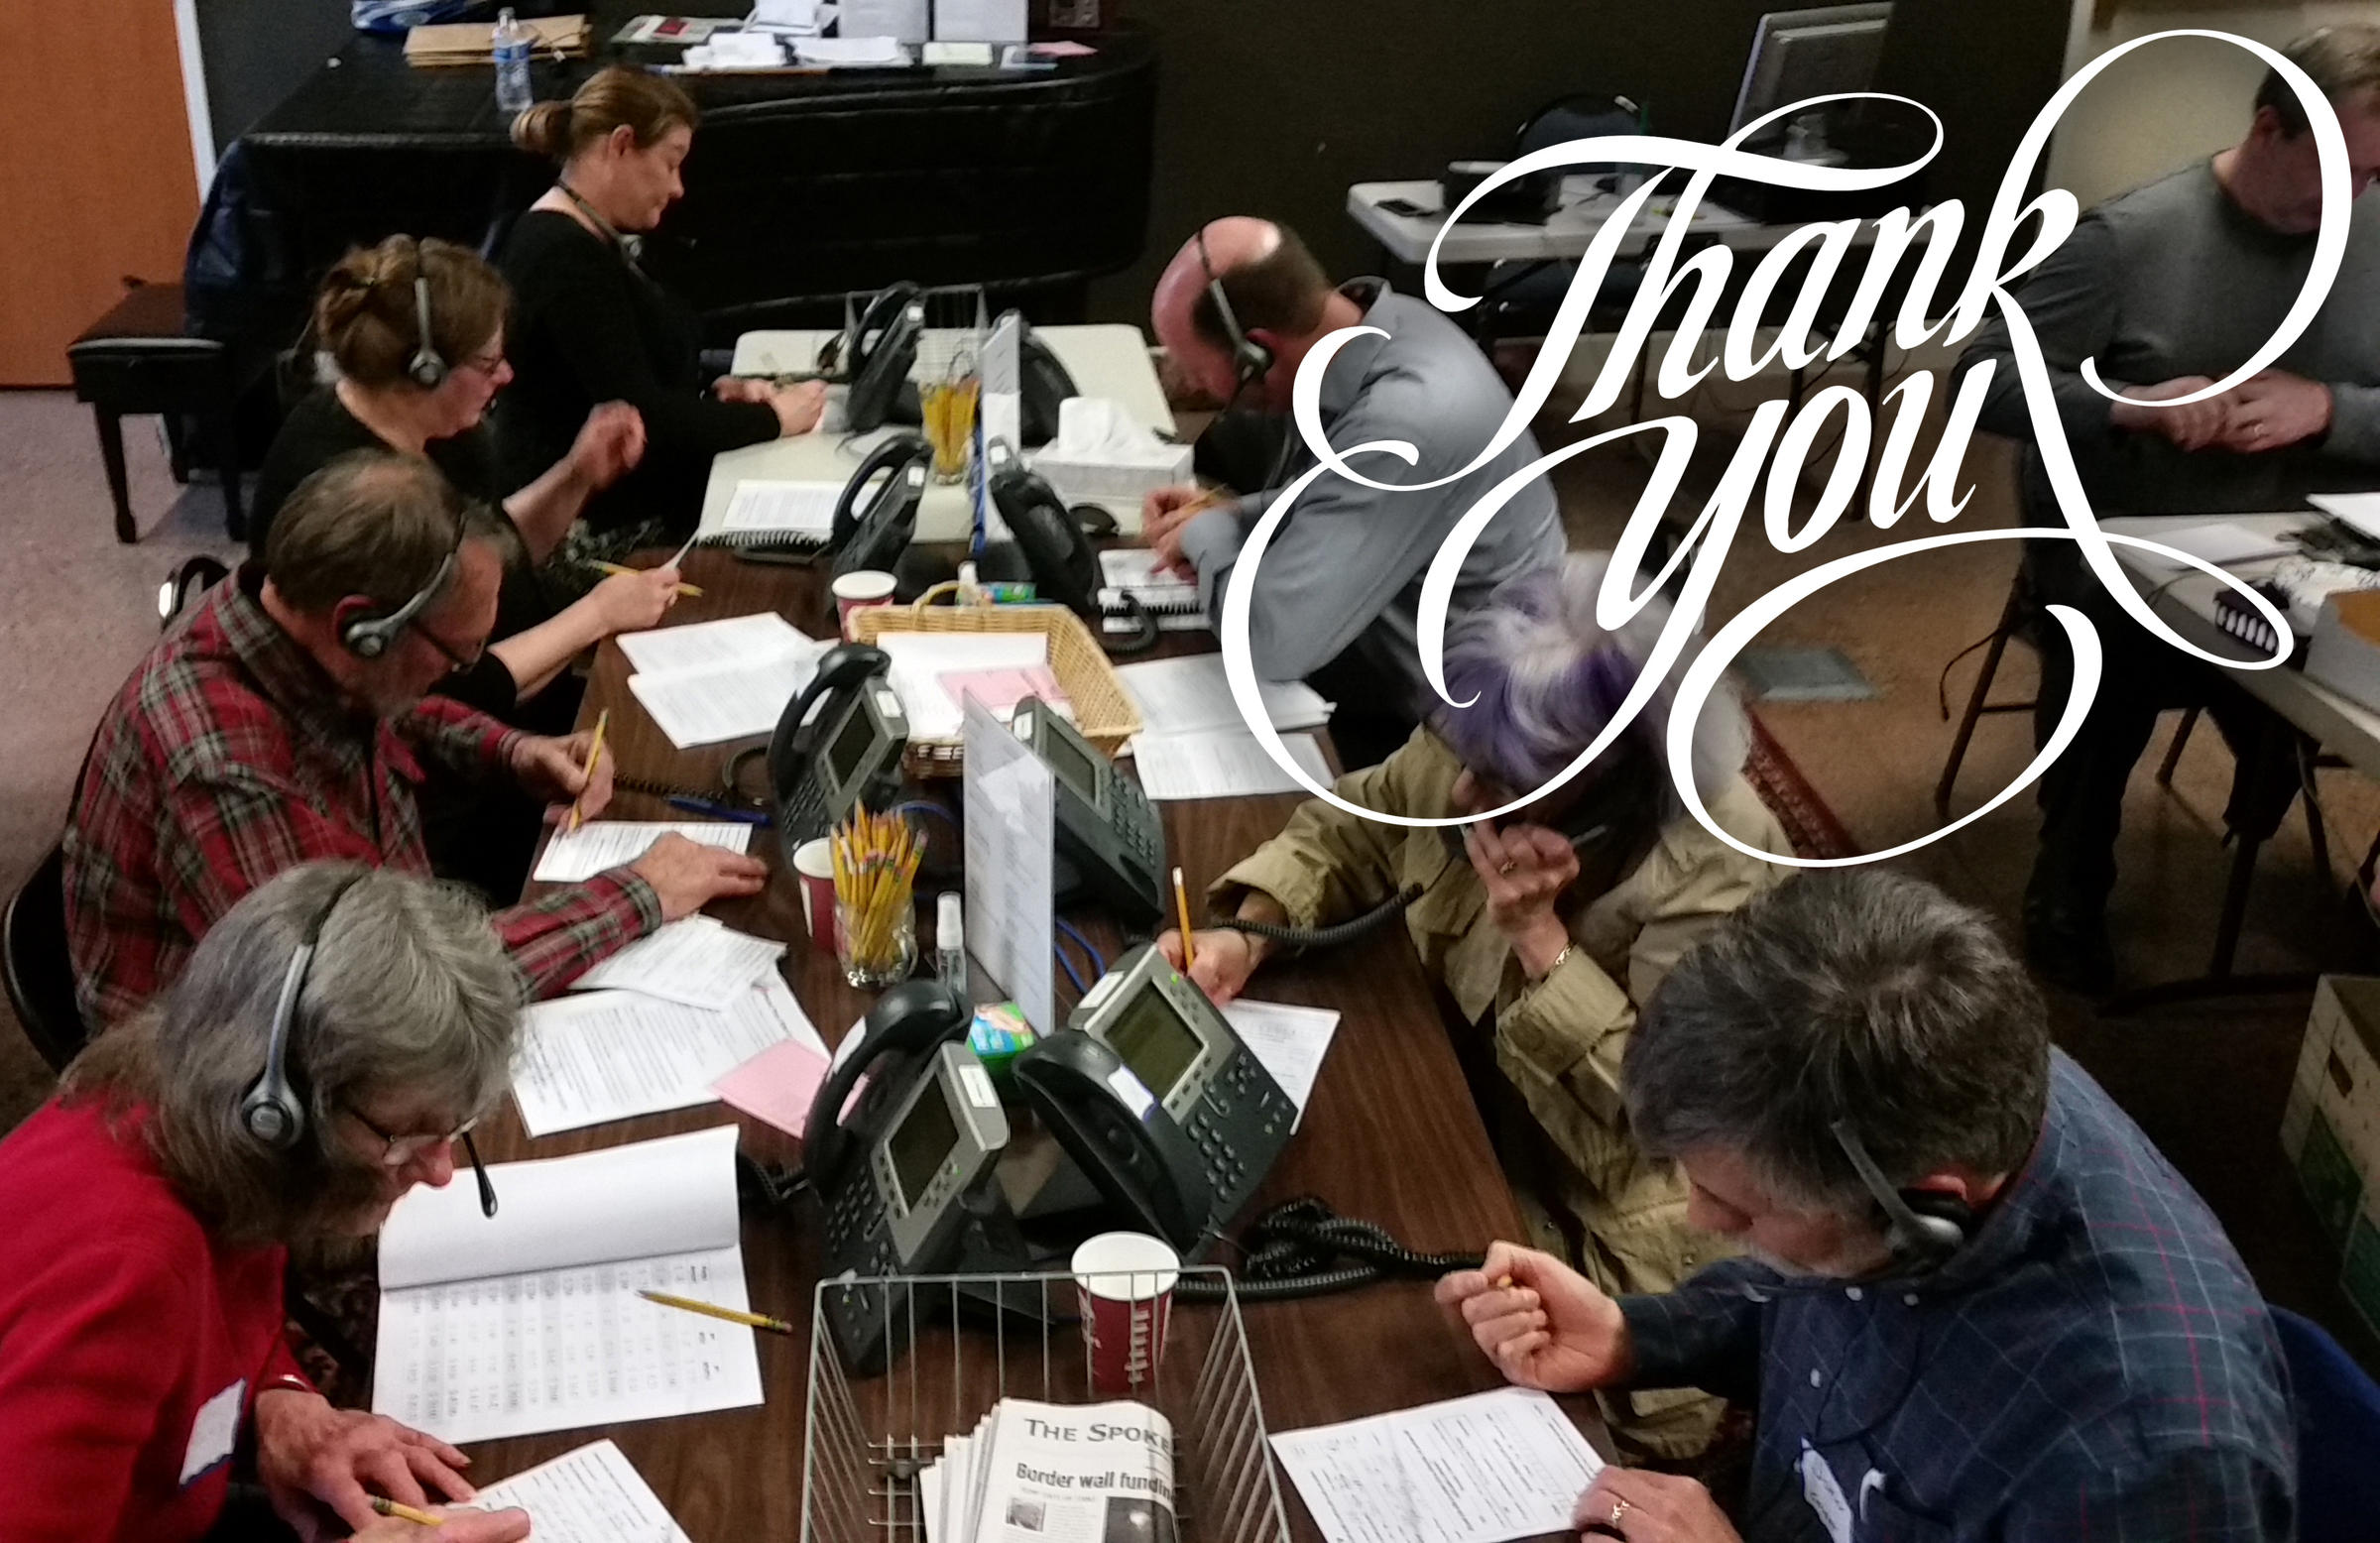 Thank You For Adding a 'Power Hour' to Spring Pledge Drive